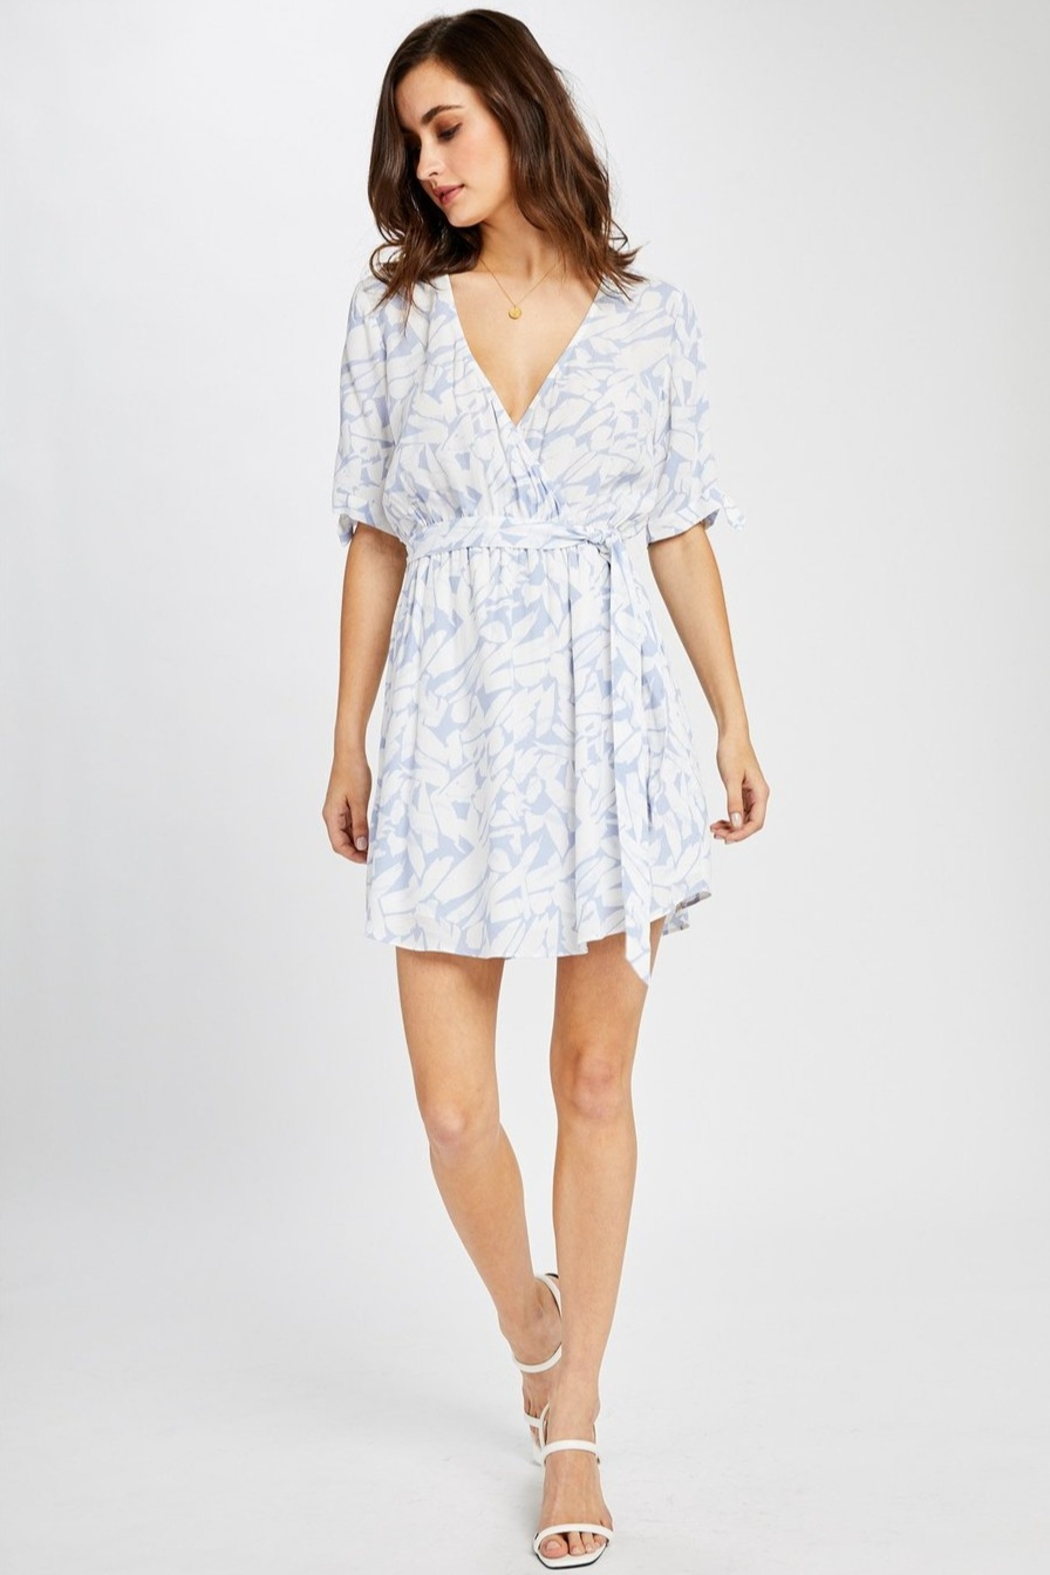 Gentle Fawn Bliss Dress - Main Image